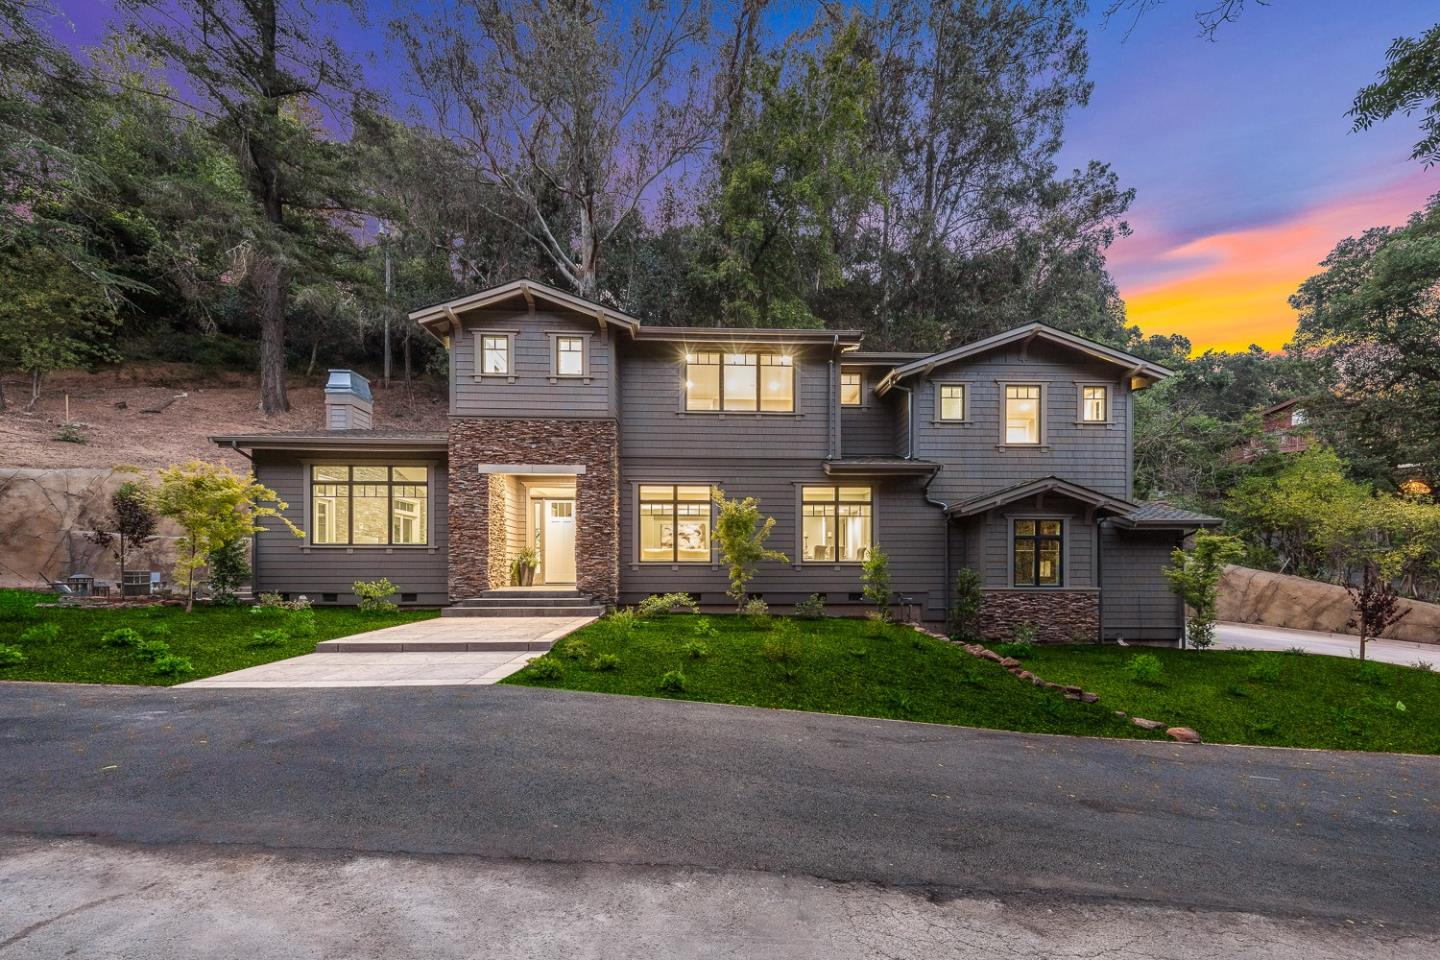 Detail Gallery Image 1 of 40 For 16021 Wood Acres Rd, Los Gatos, CA 95030 - 4 Beds | 3/1 Baths